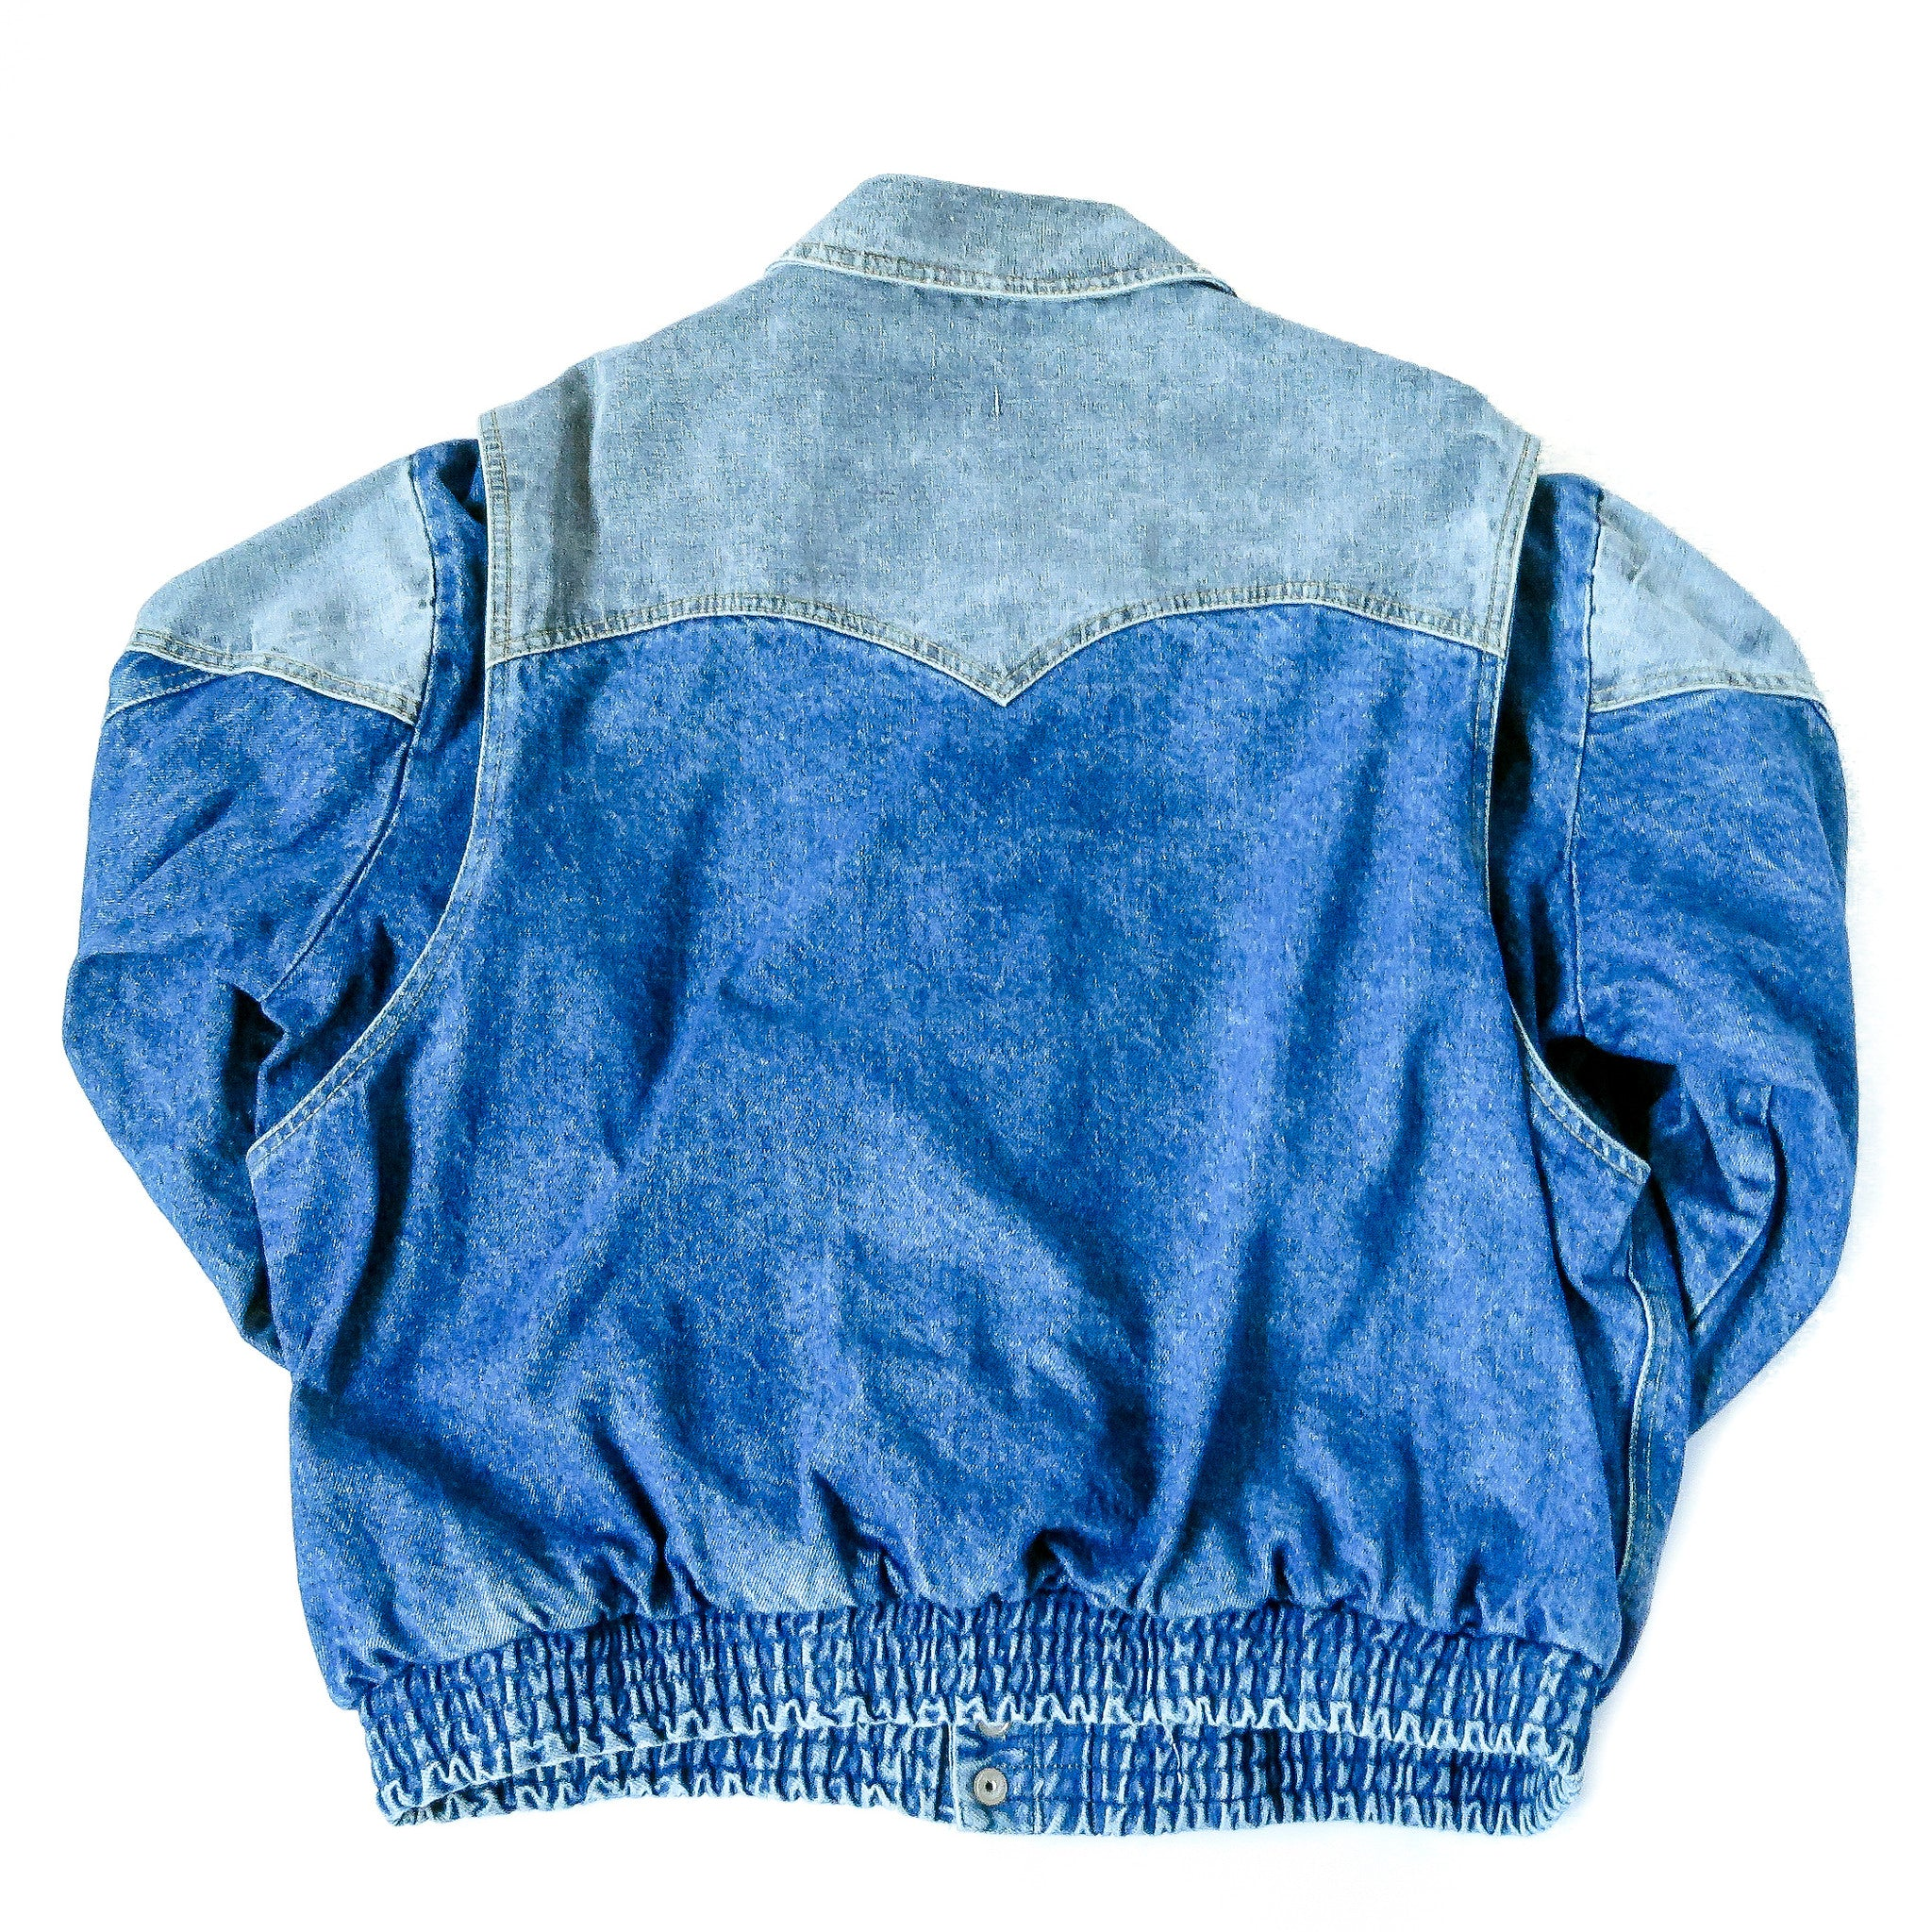 Vintage Guess Georges Marciano Denim Jacket Sz XL